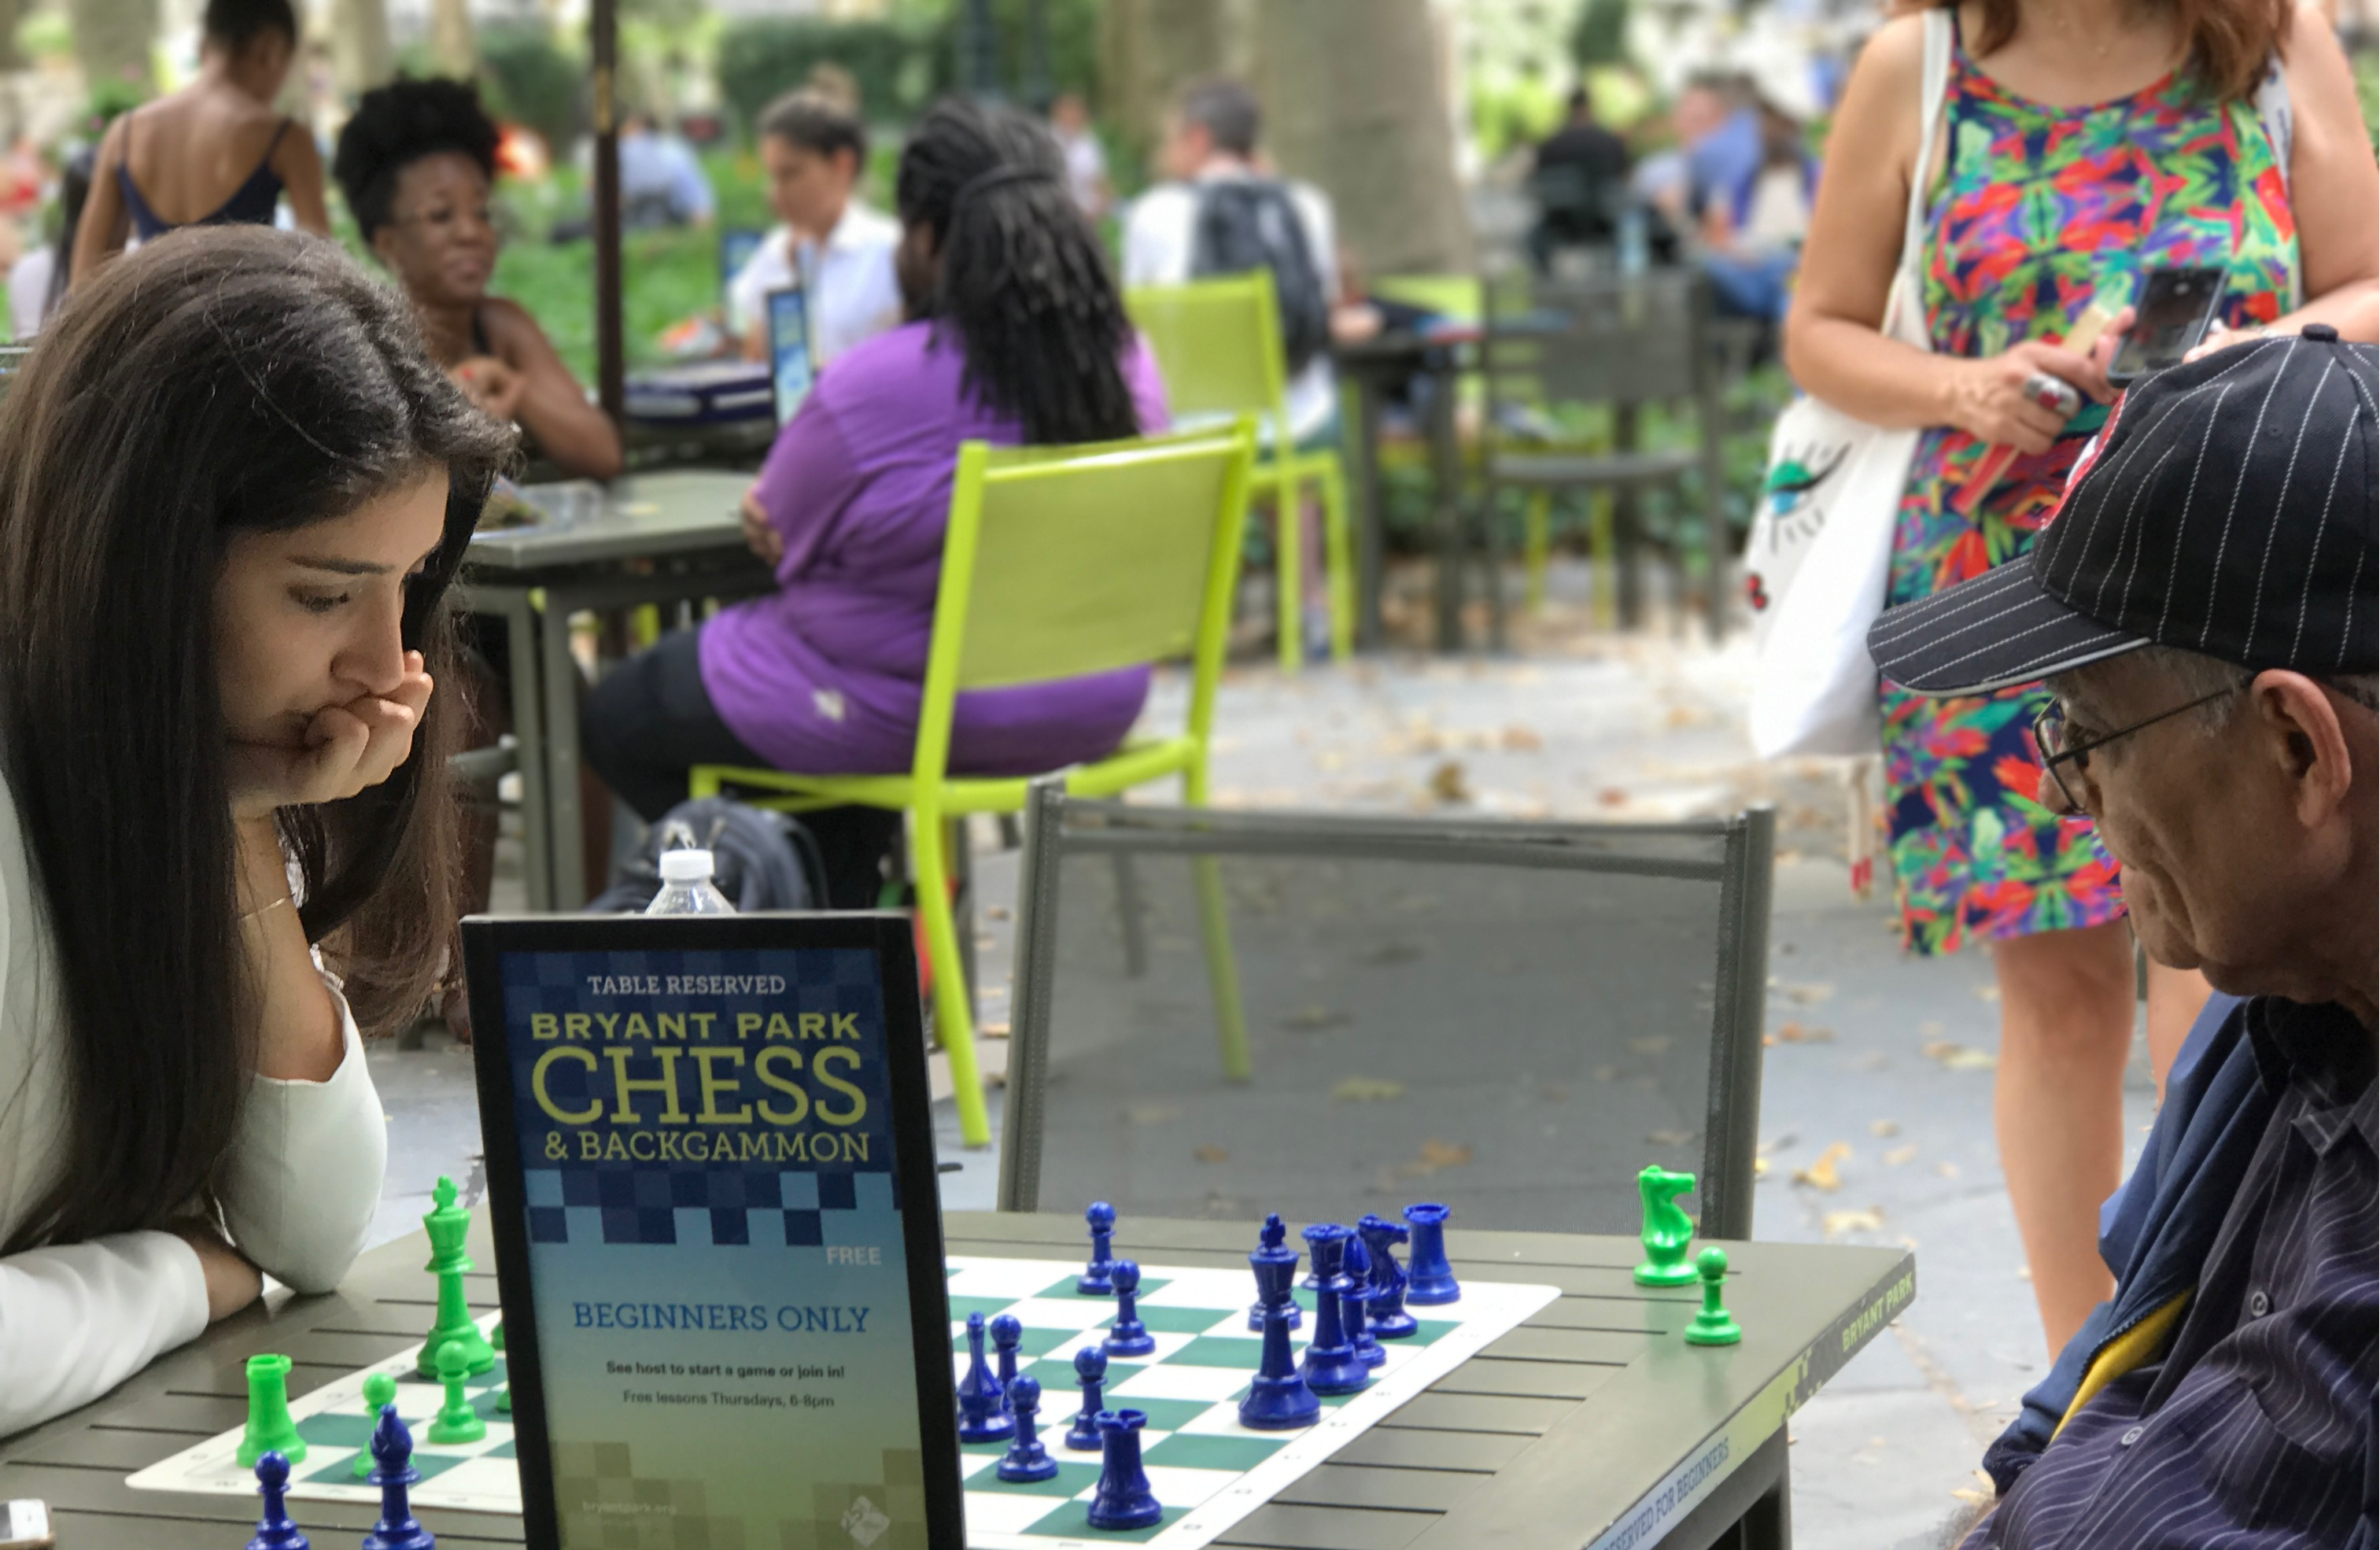 Watching a ches match in New York City's Bryant Park